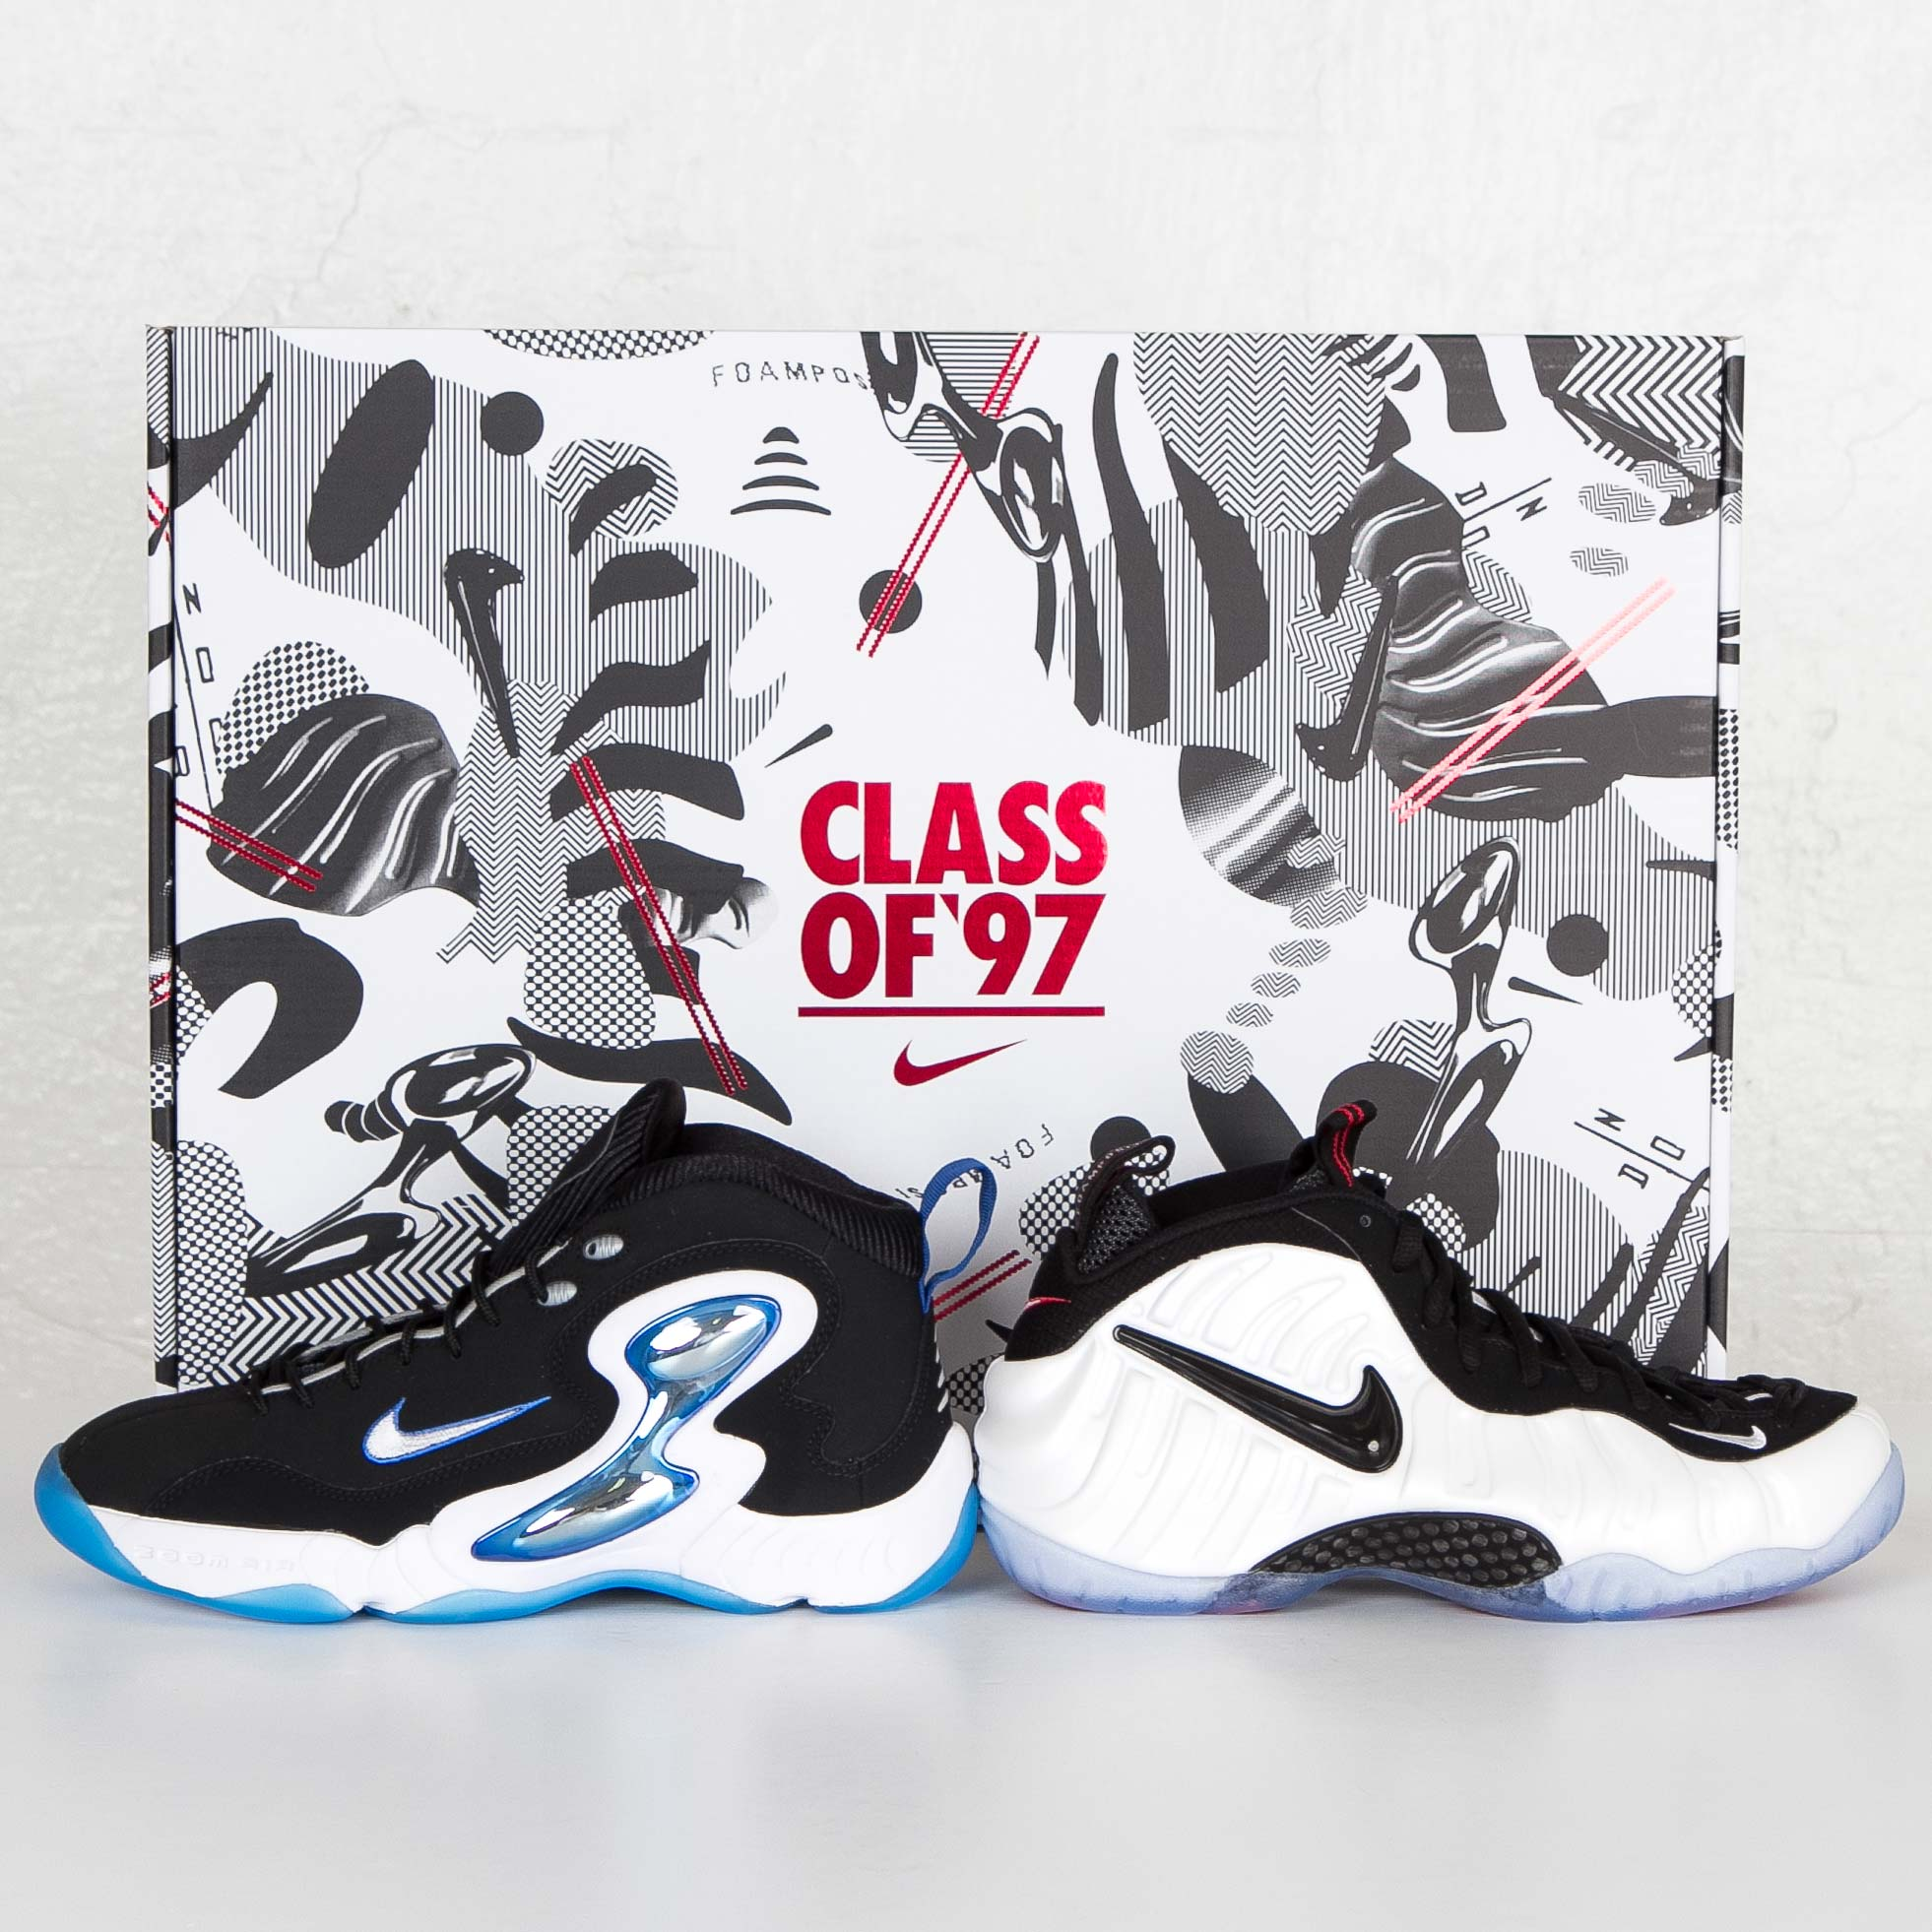 c87492be18017 Nike Class Of 97 Pack - 808643-100 - Sneakersnstuff